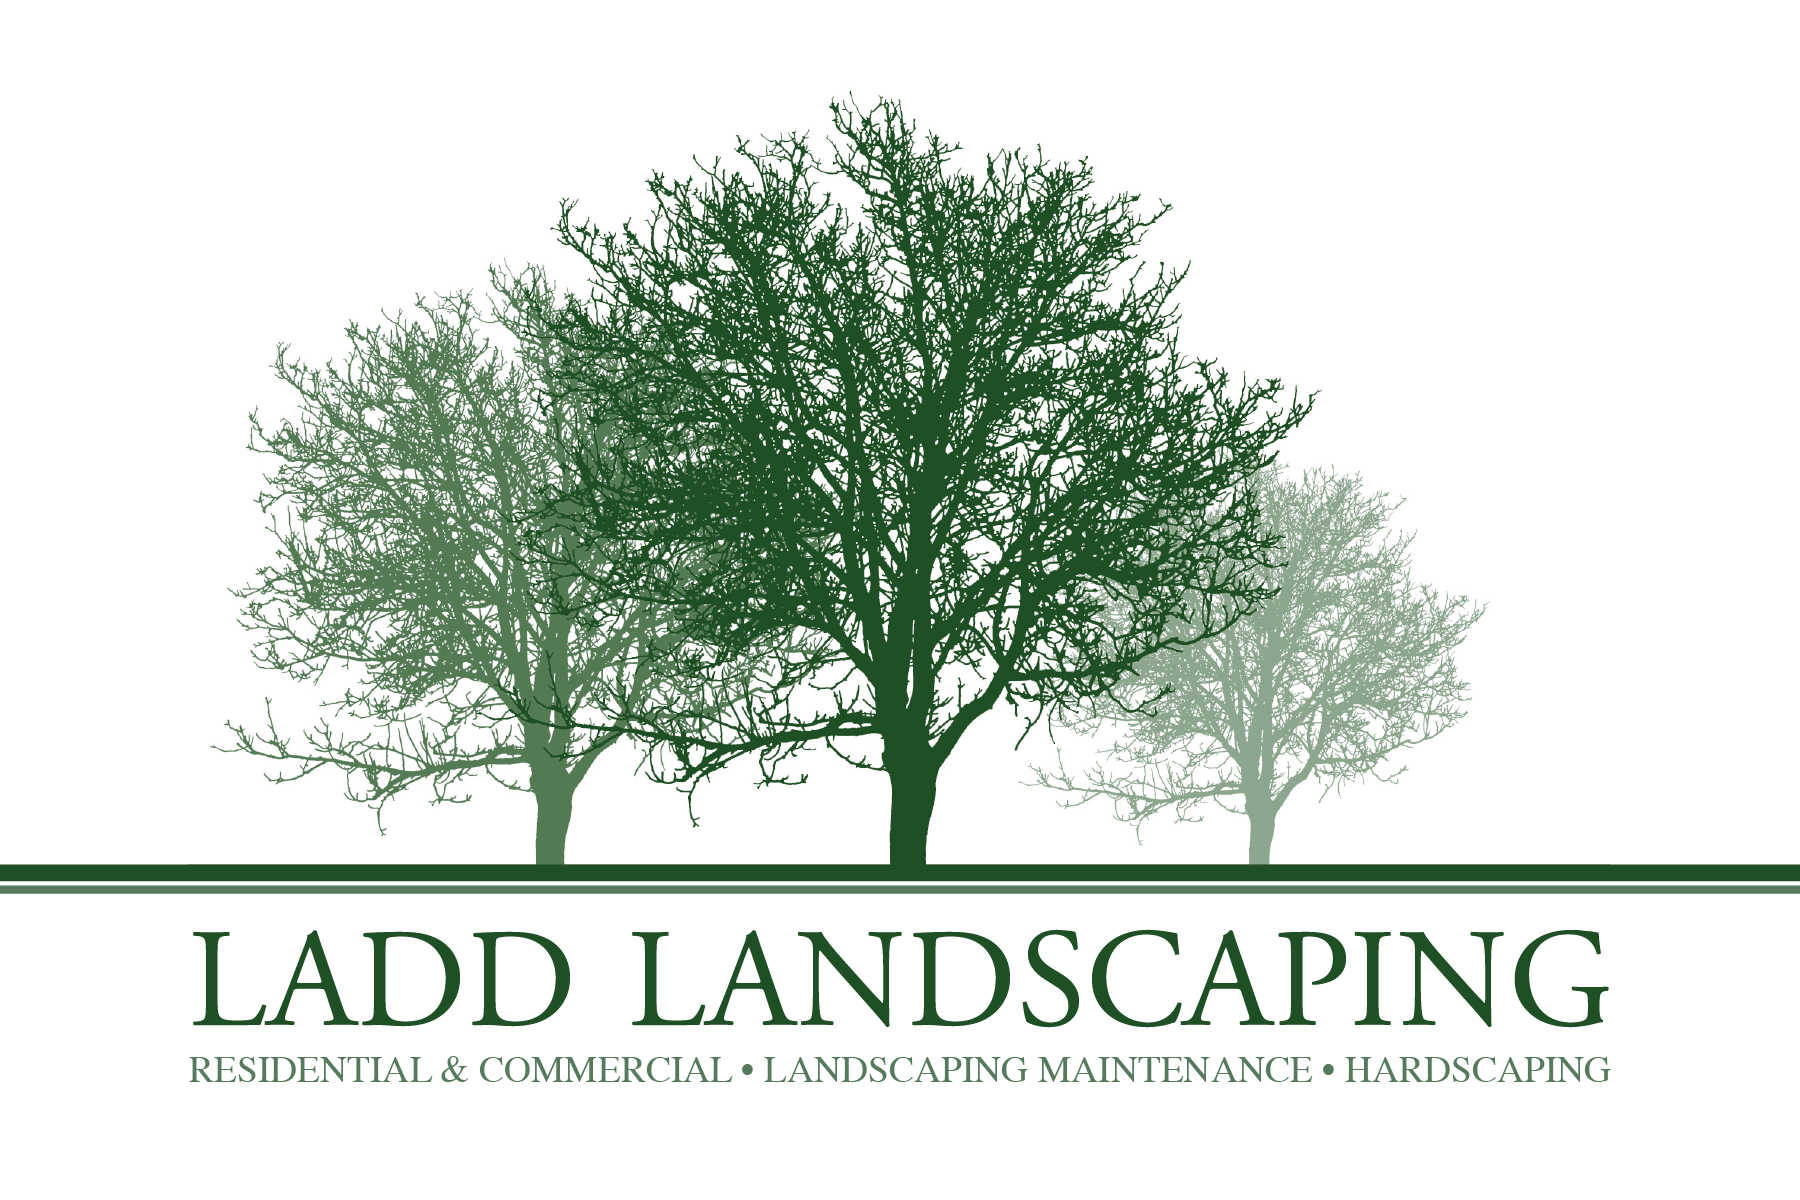 Landscaping logos logo brands for free hd 3d for Best garden tools brand